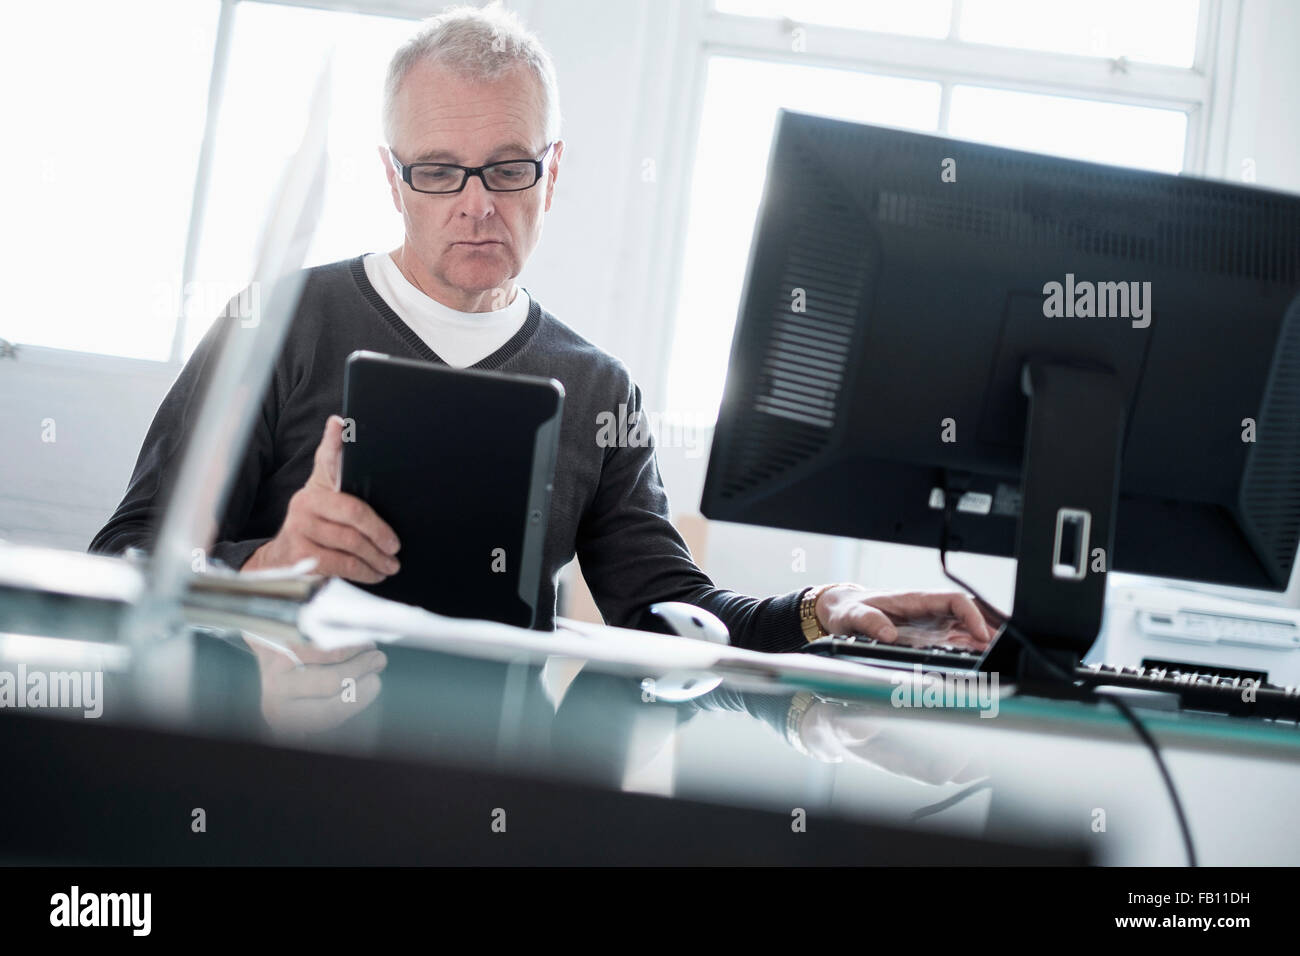 Man working in office using computer and tablet - Stock Image